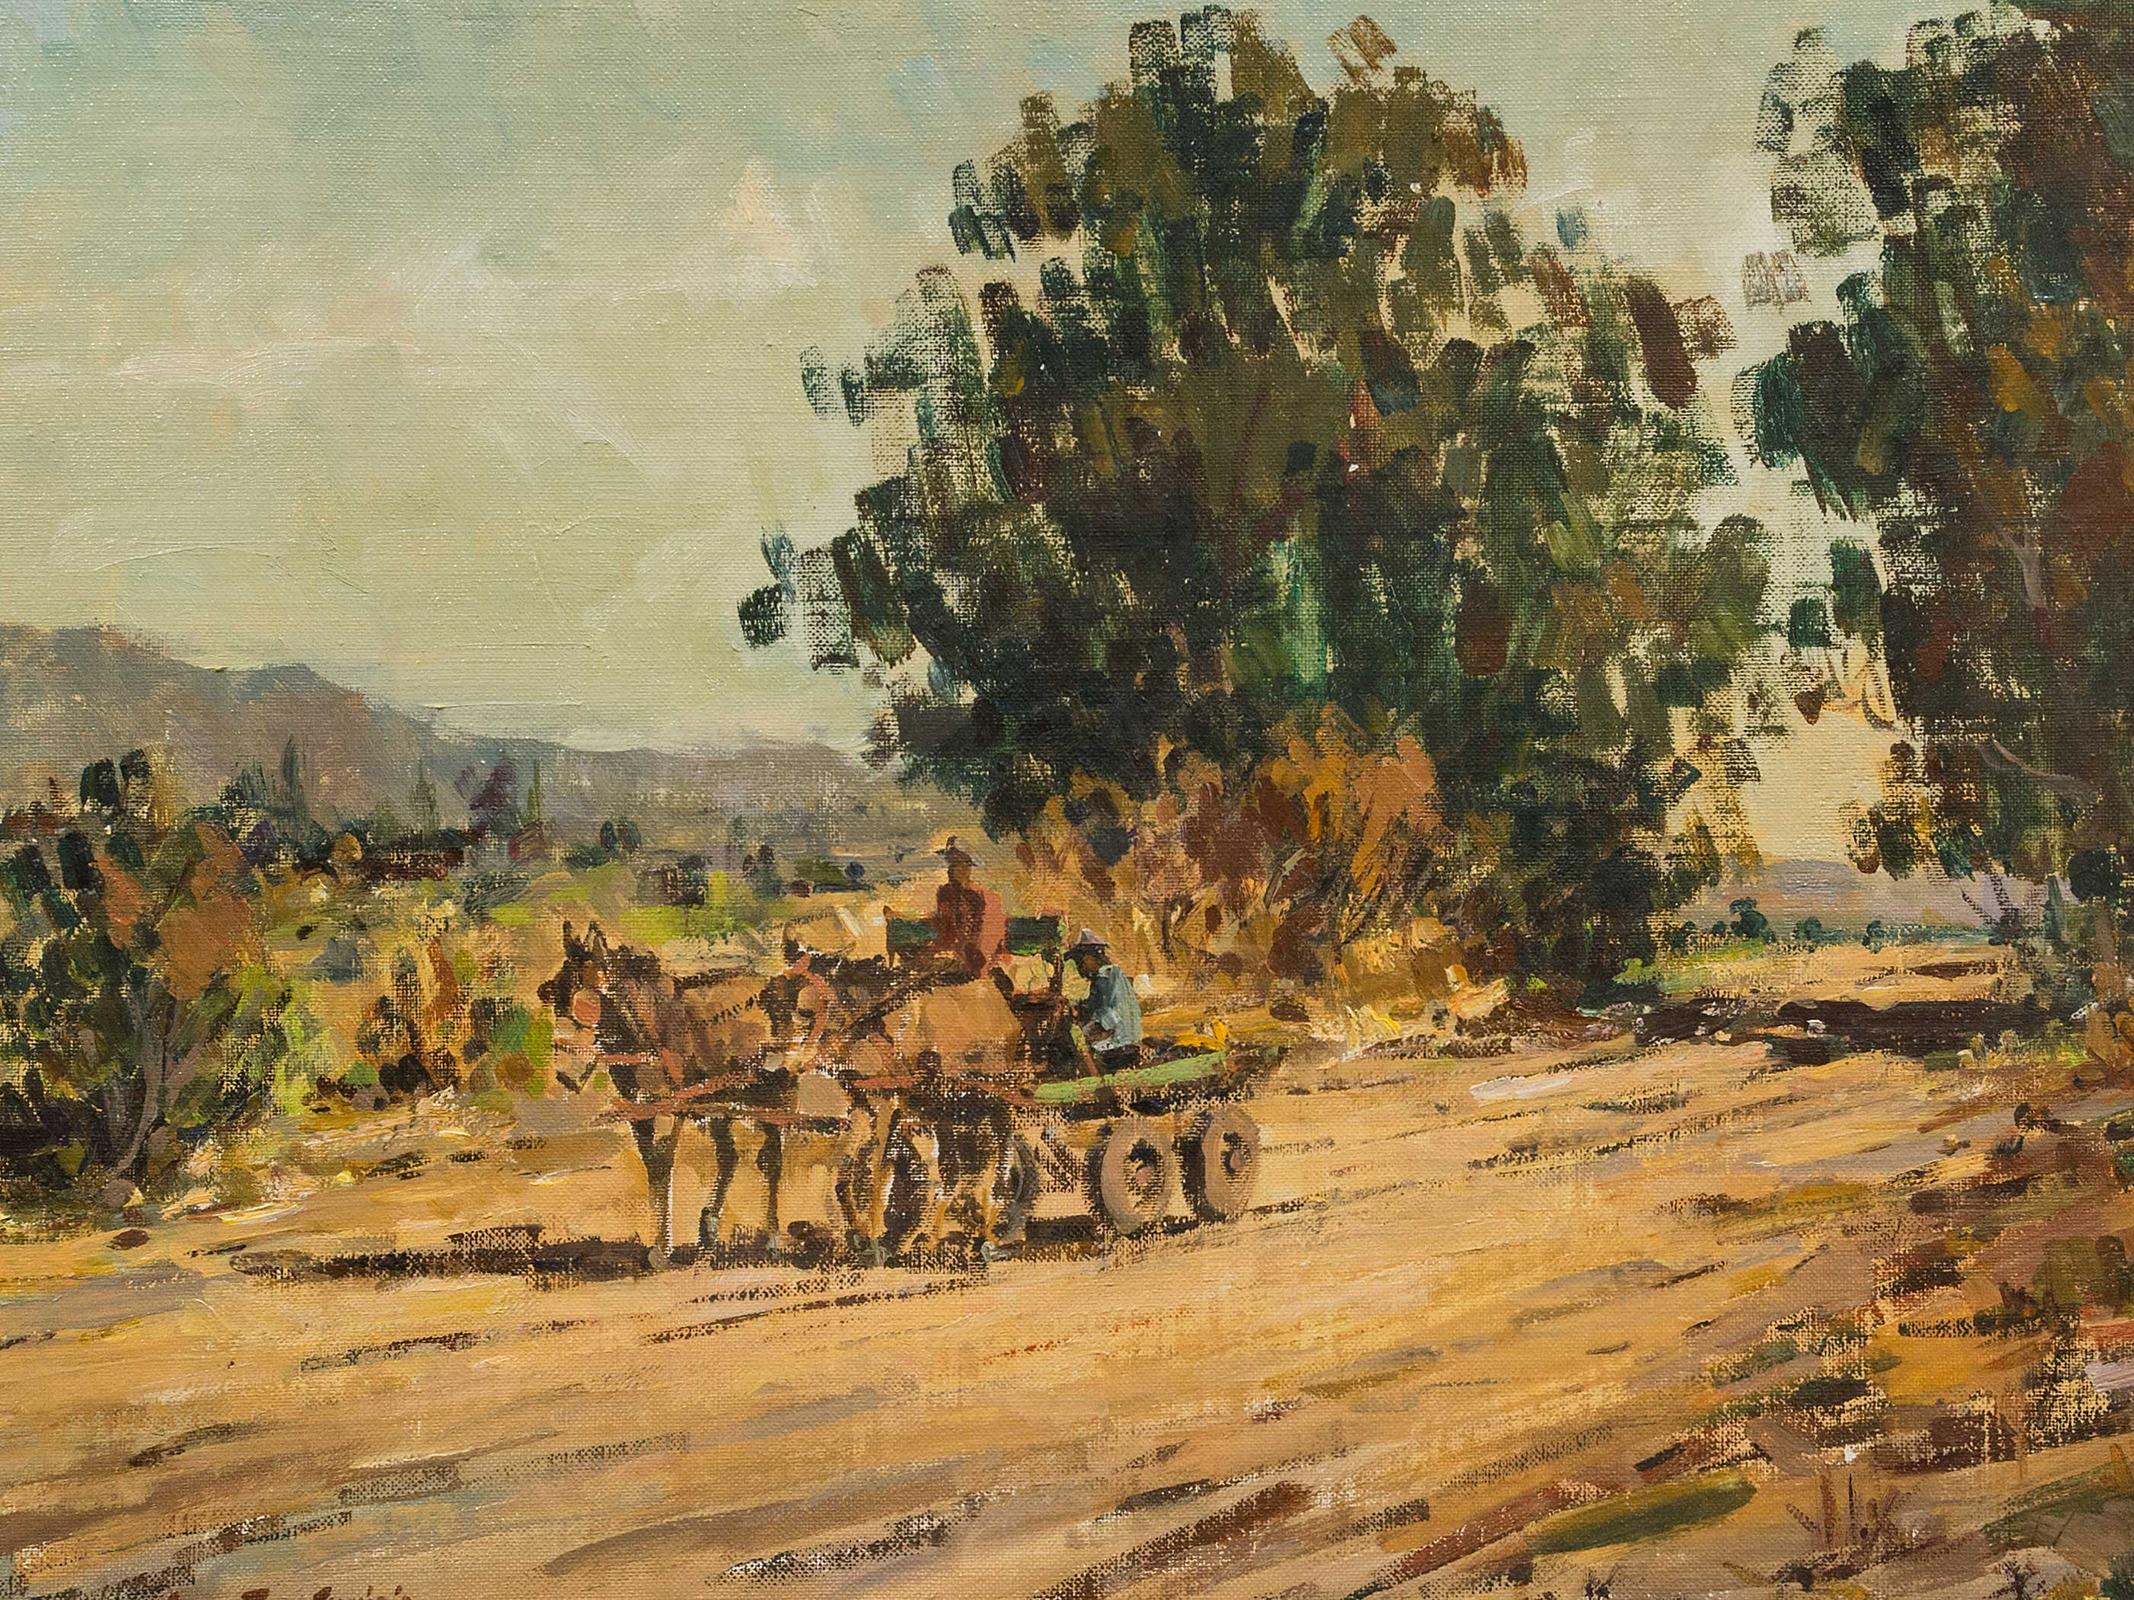 Gian Piero Garizio (SA, born 1931) Oil, Donkey Cart, Signed, 44 x 58